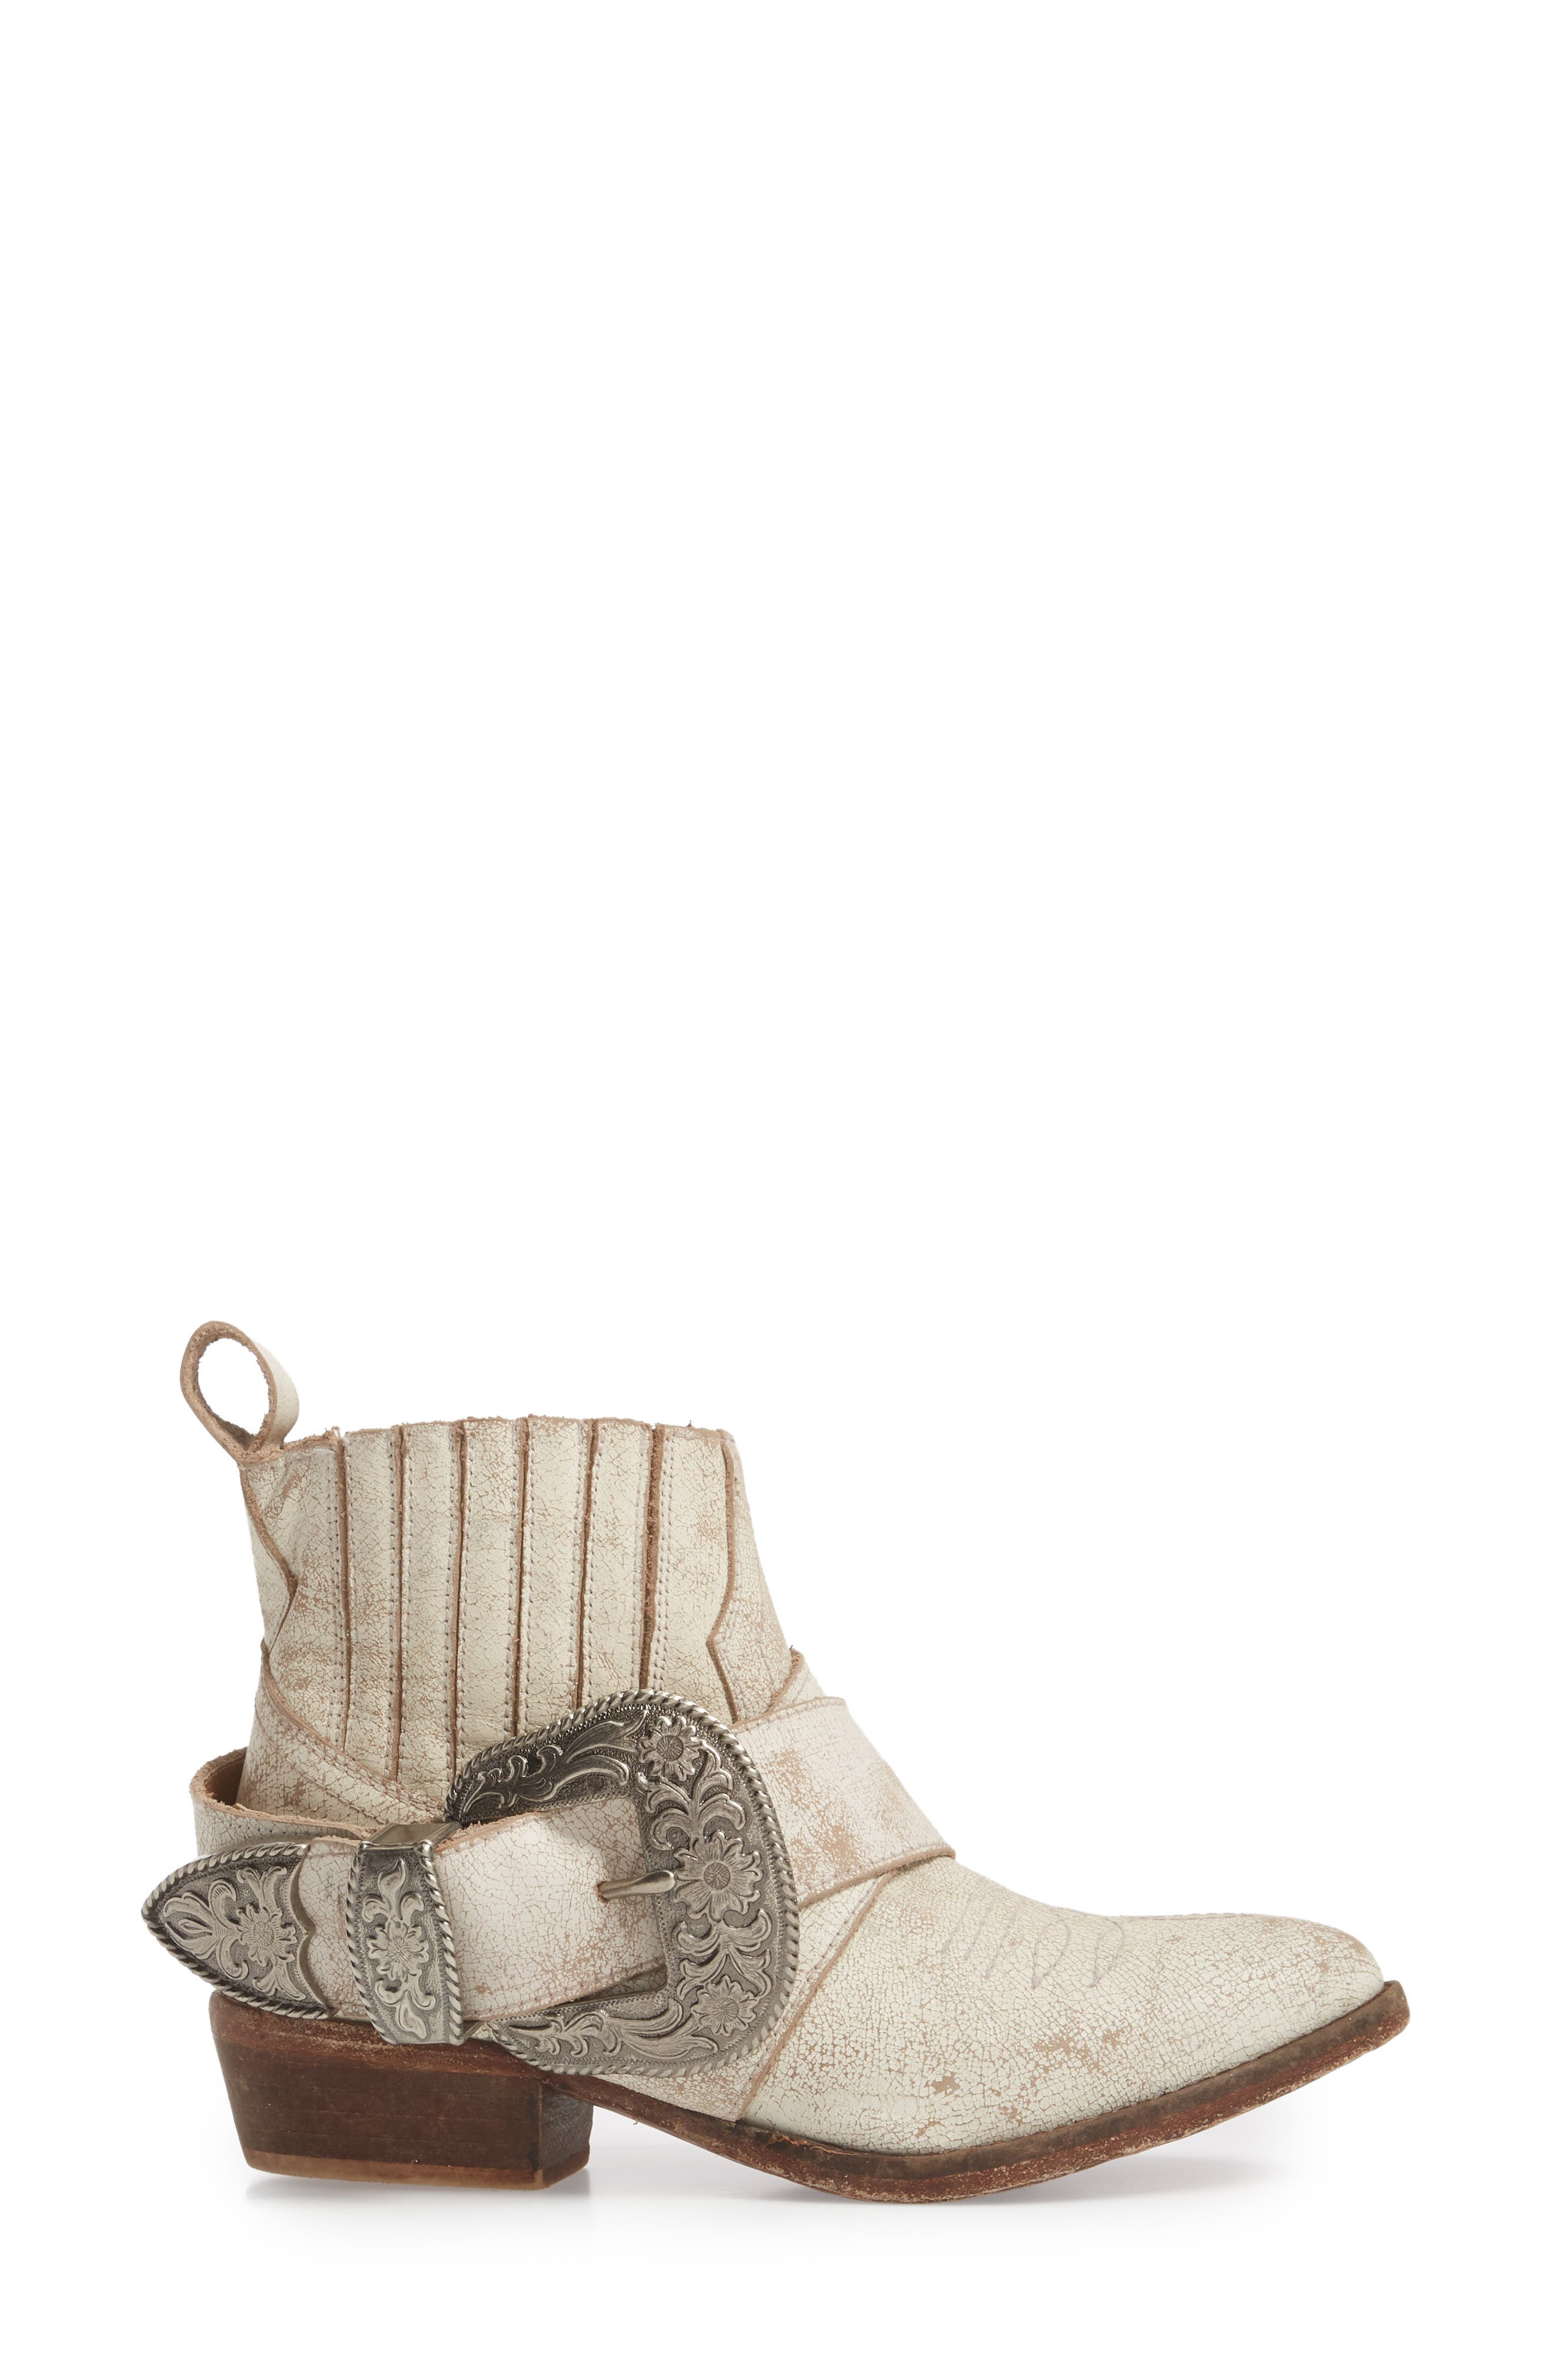 Western Biker Bootie,                             Alternate thumbnail 3, color,                             WHITE LEATHER